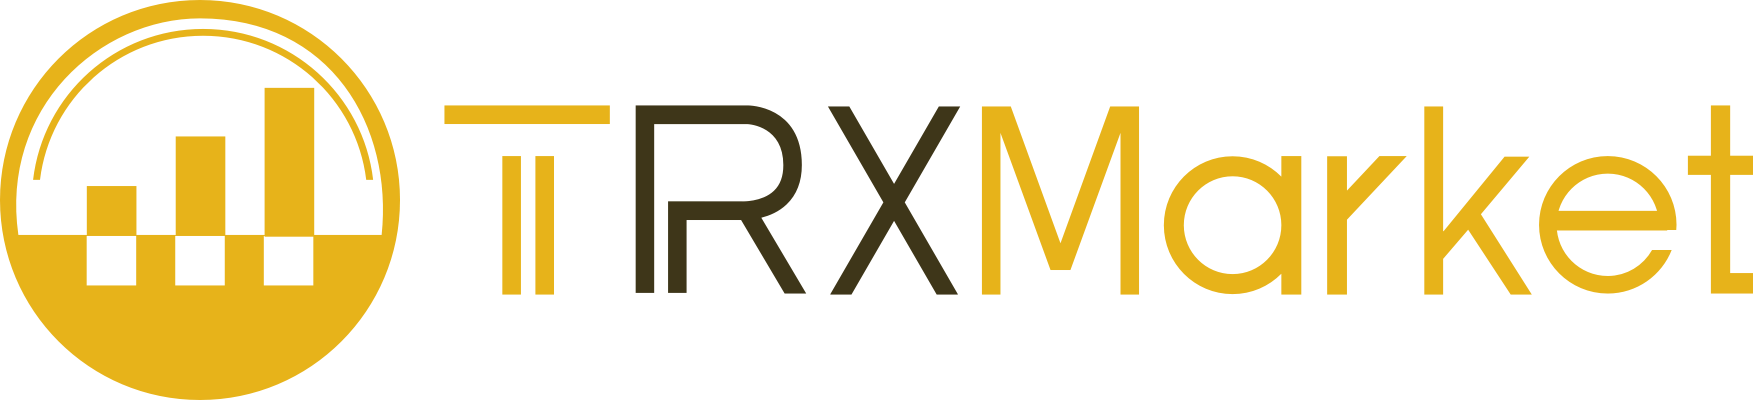 Image result for trxmarket